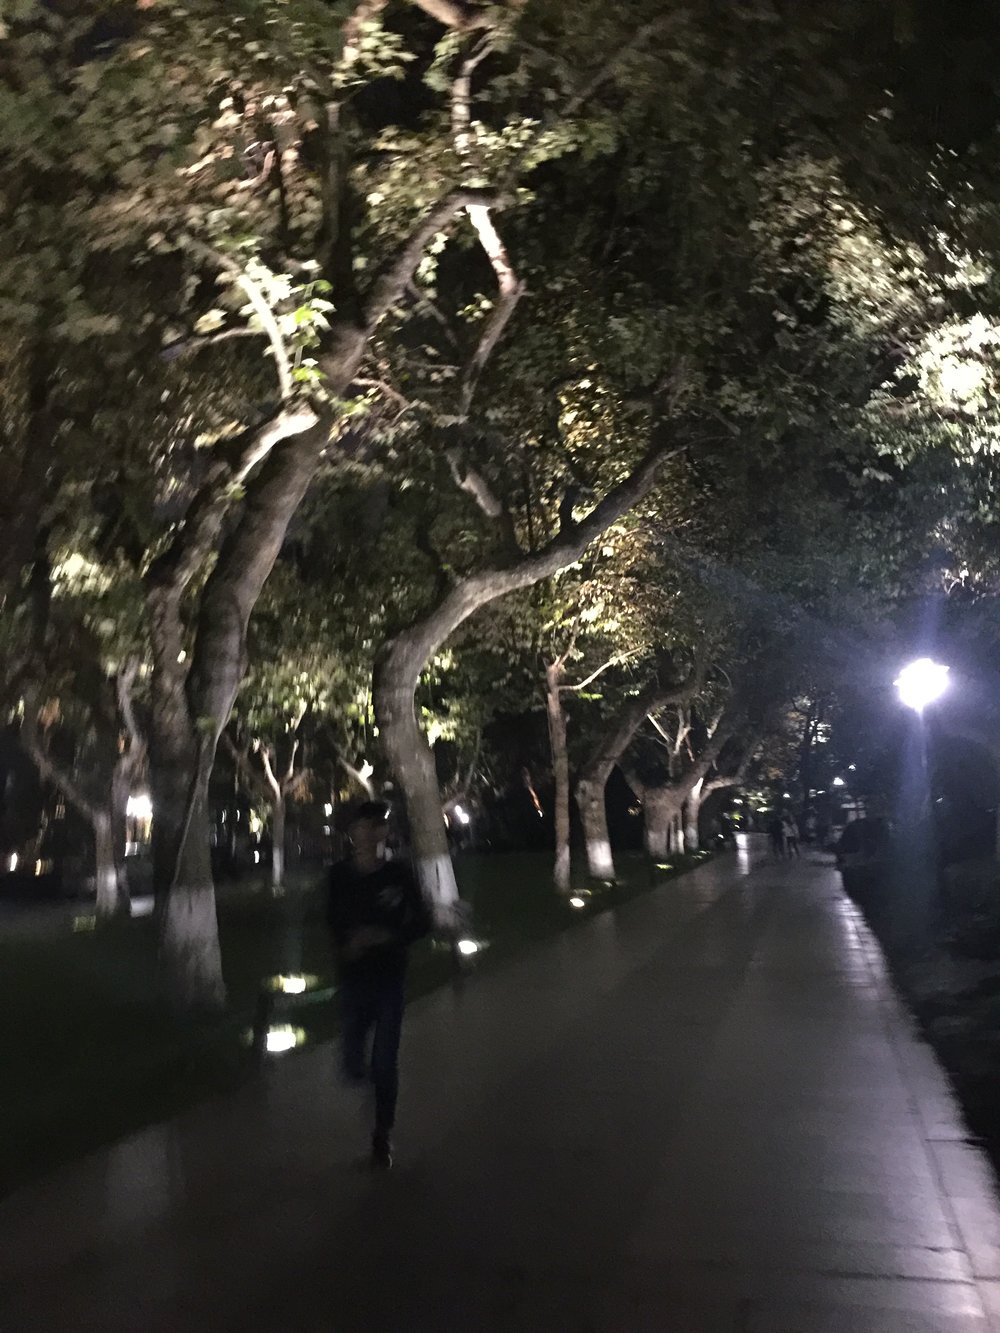 Tree lined streets at dusk